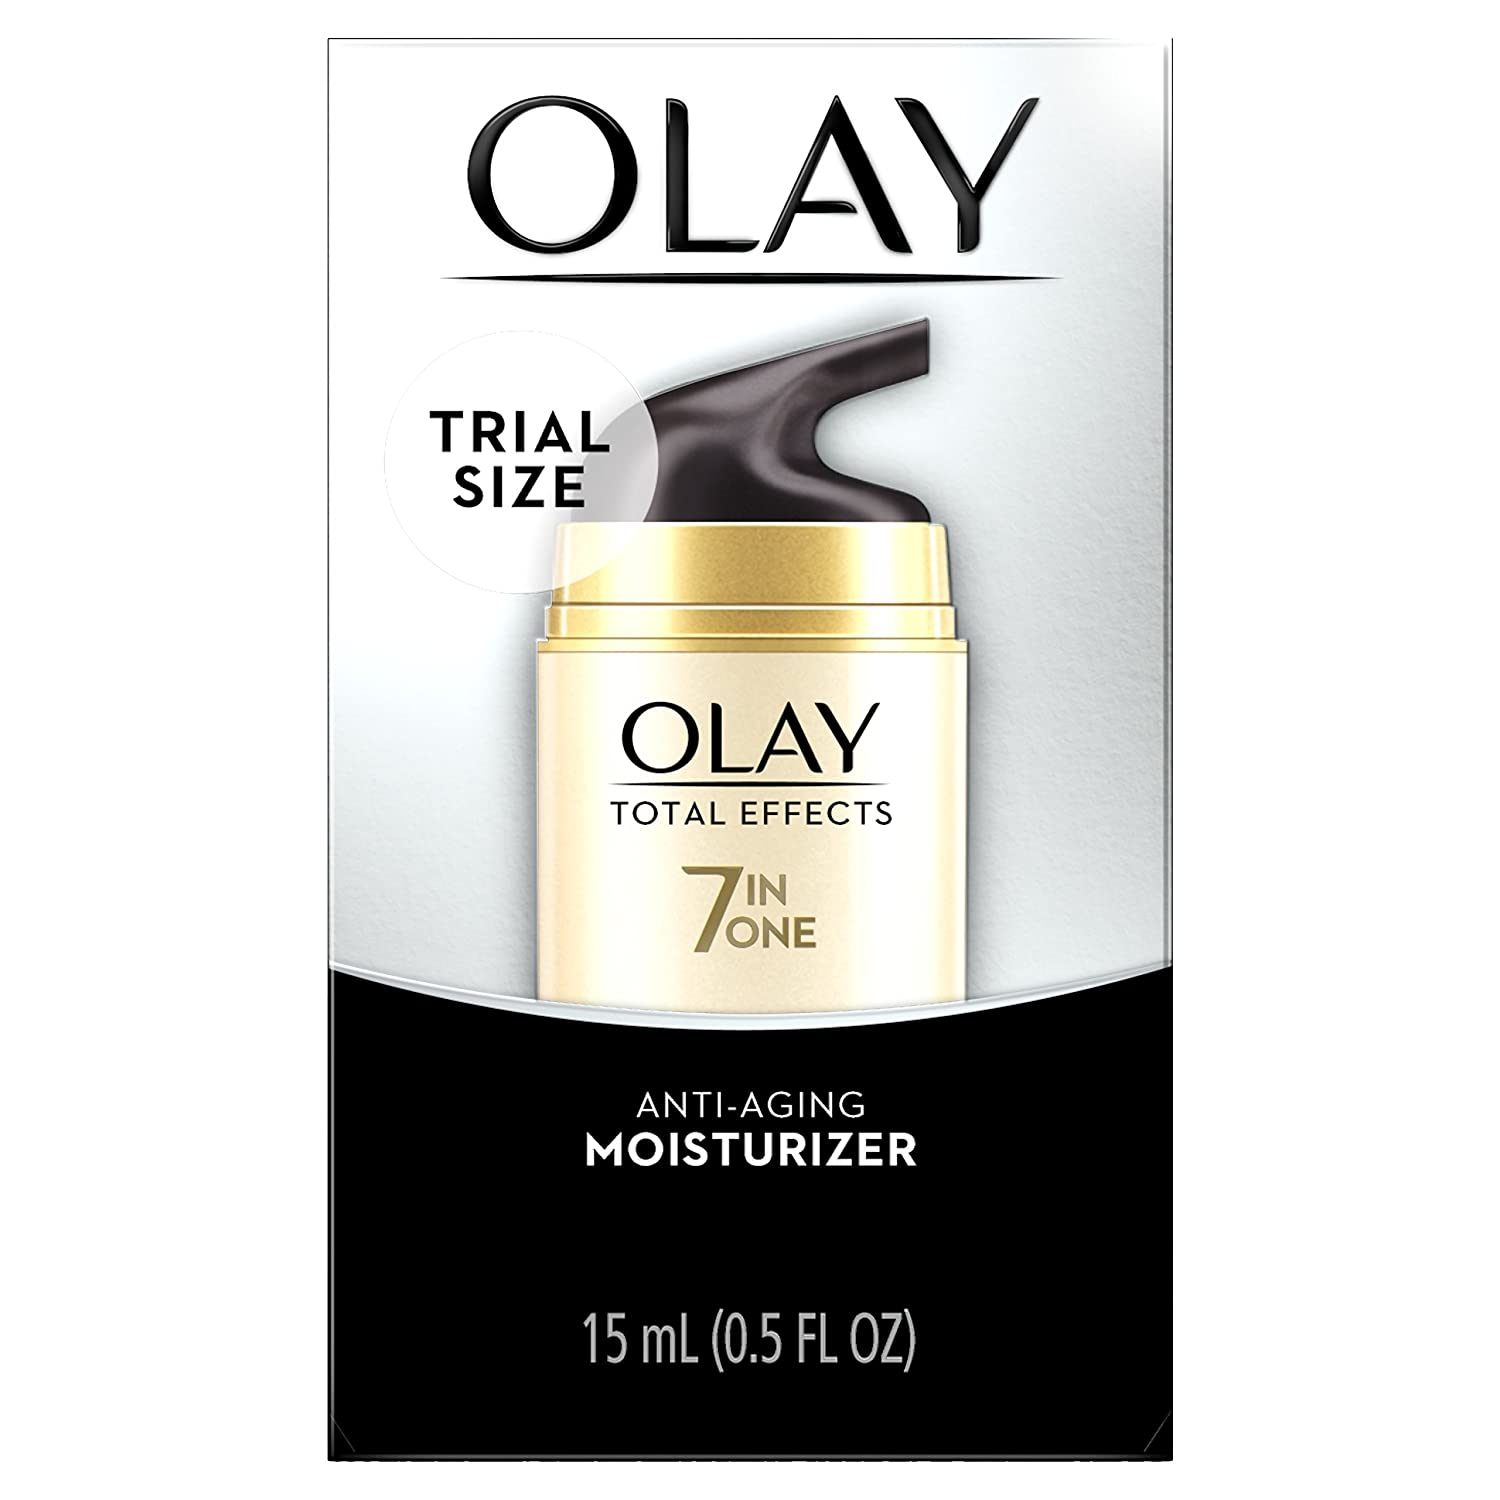 Olay Total Effects 7-In-One Anti-Aging Moisturizer 15ml (.5fl.oz.) TRIAL SIZE